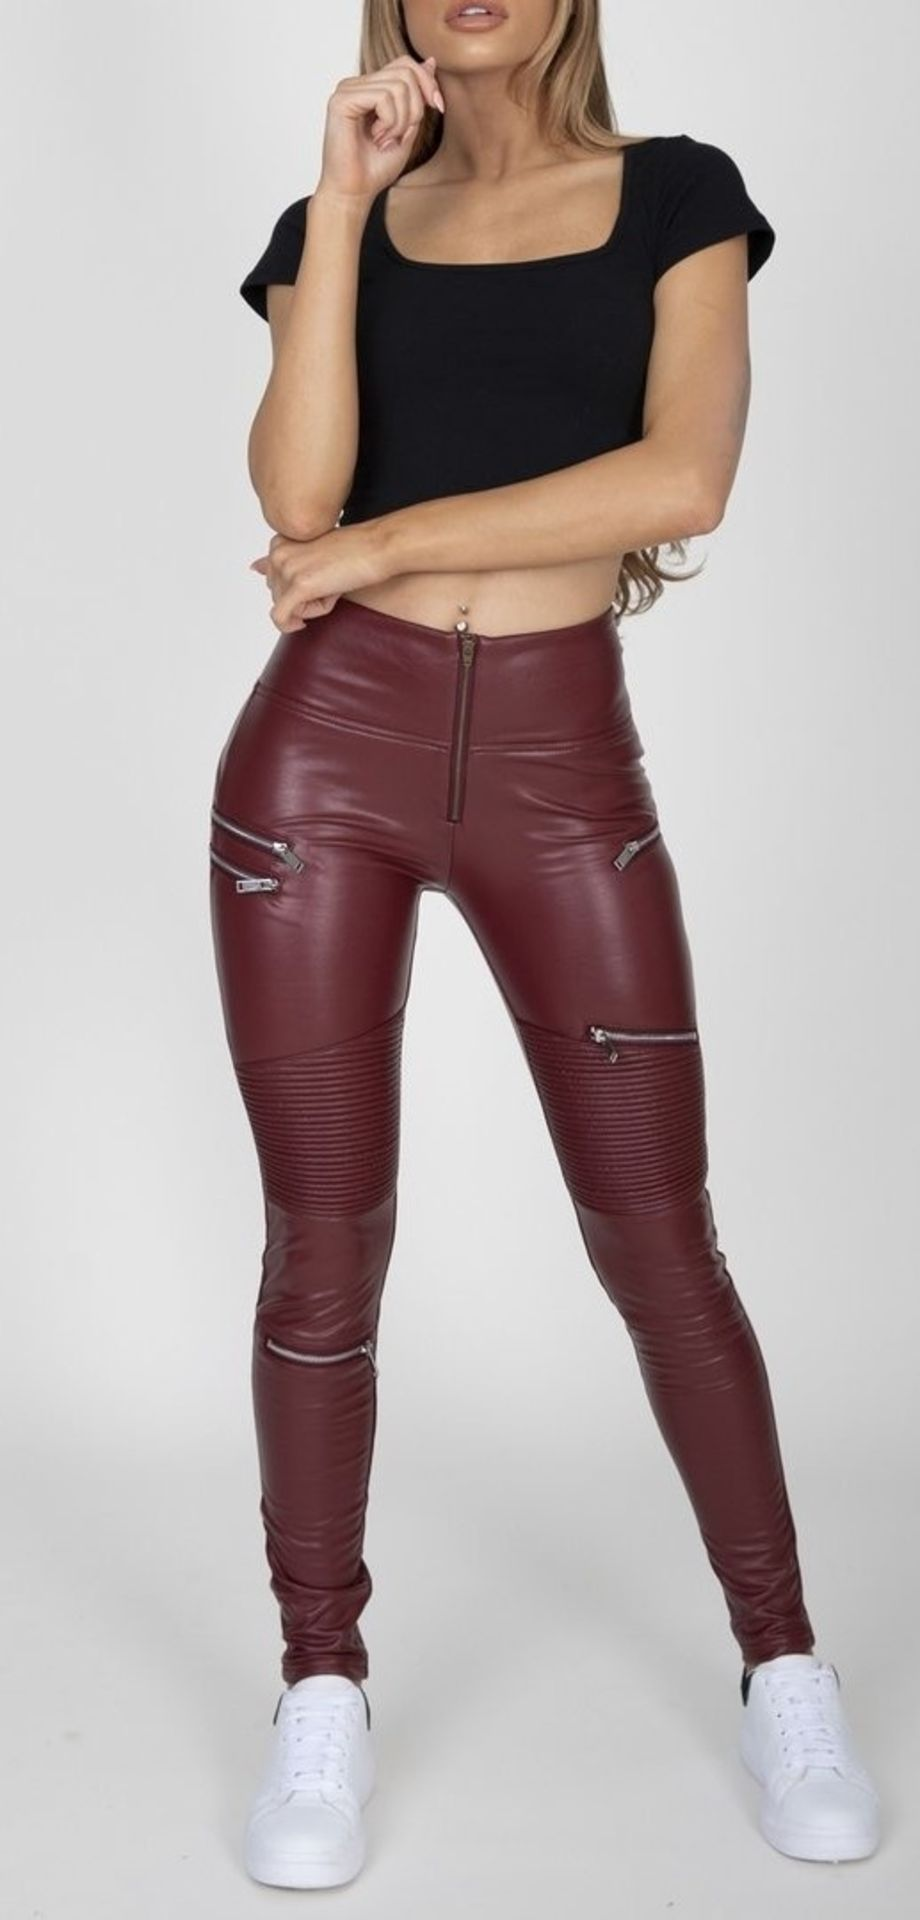 10 X BRAND NEW HUGZ JEANS DESIGNER BRANDED WINE COL FAUX LEATHER BIKER PANTS HIGH WAIST SIZE 6 -